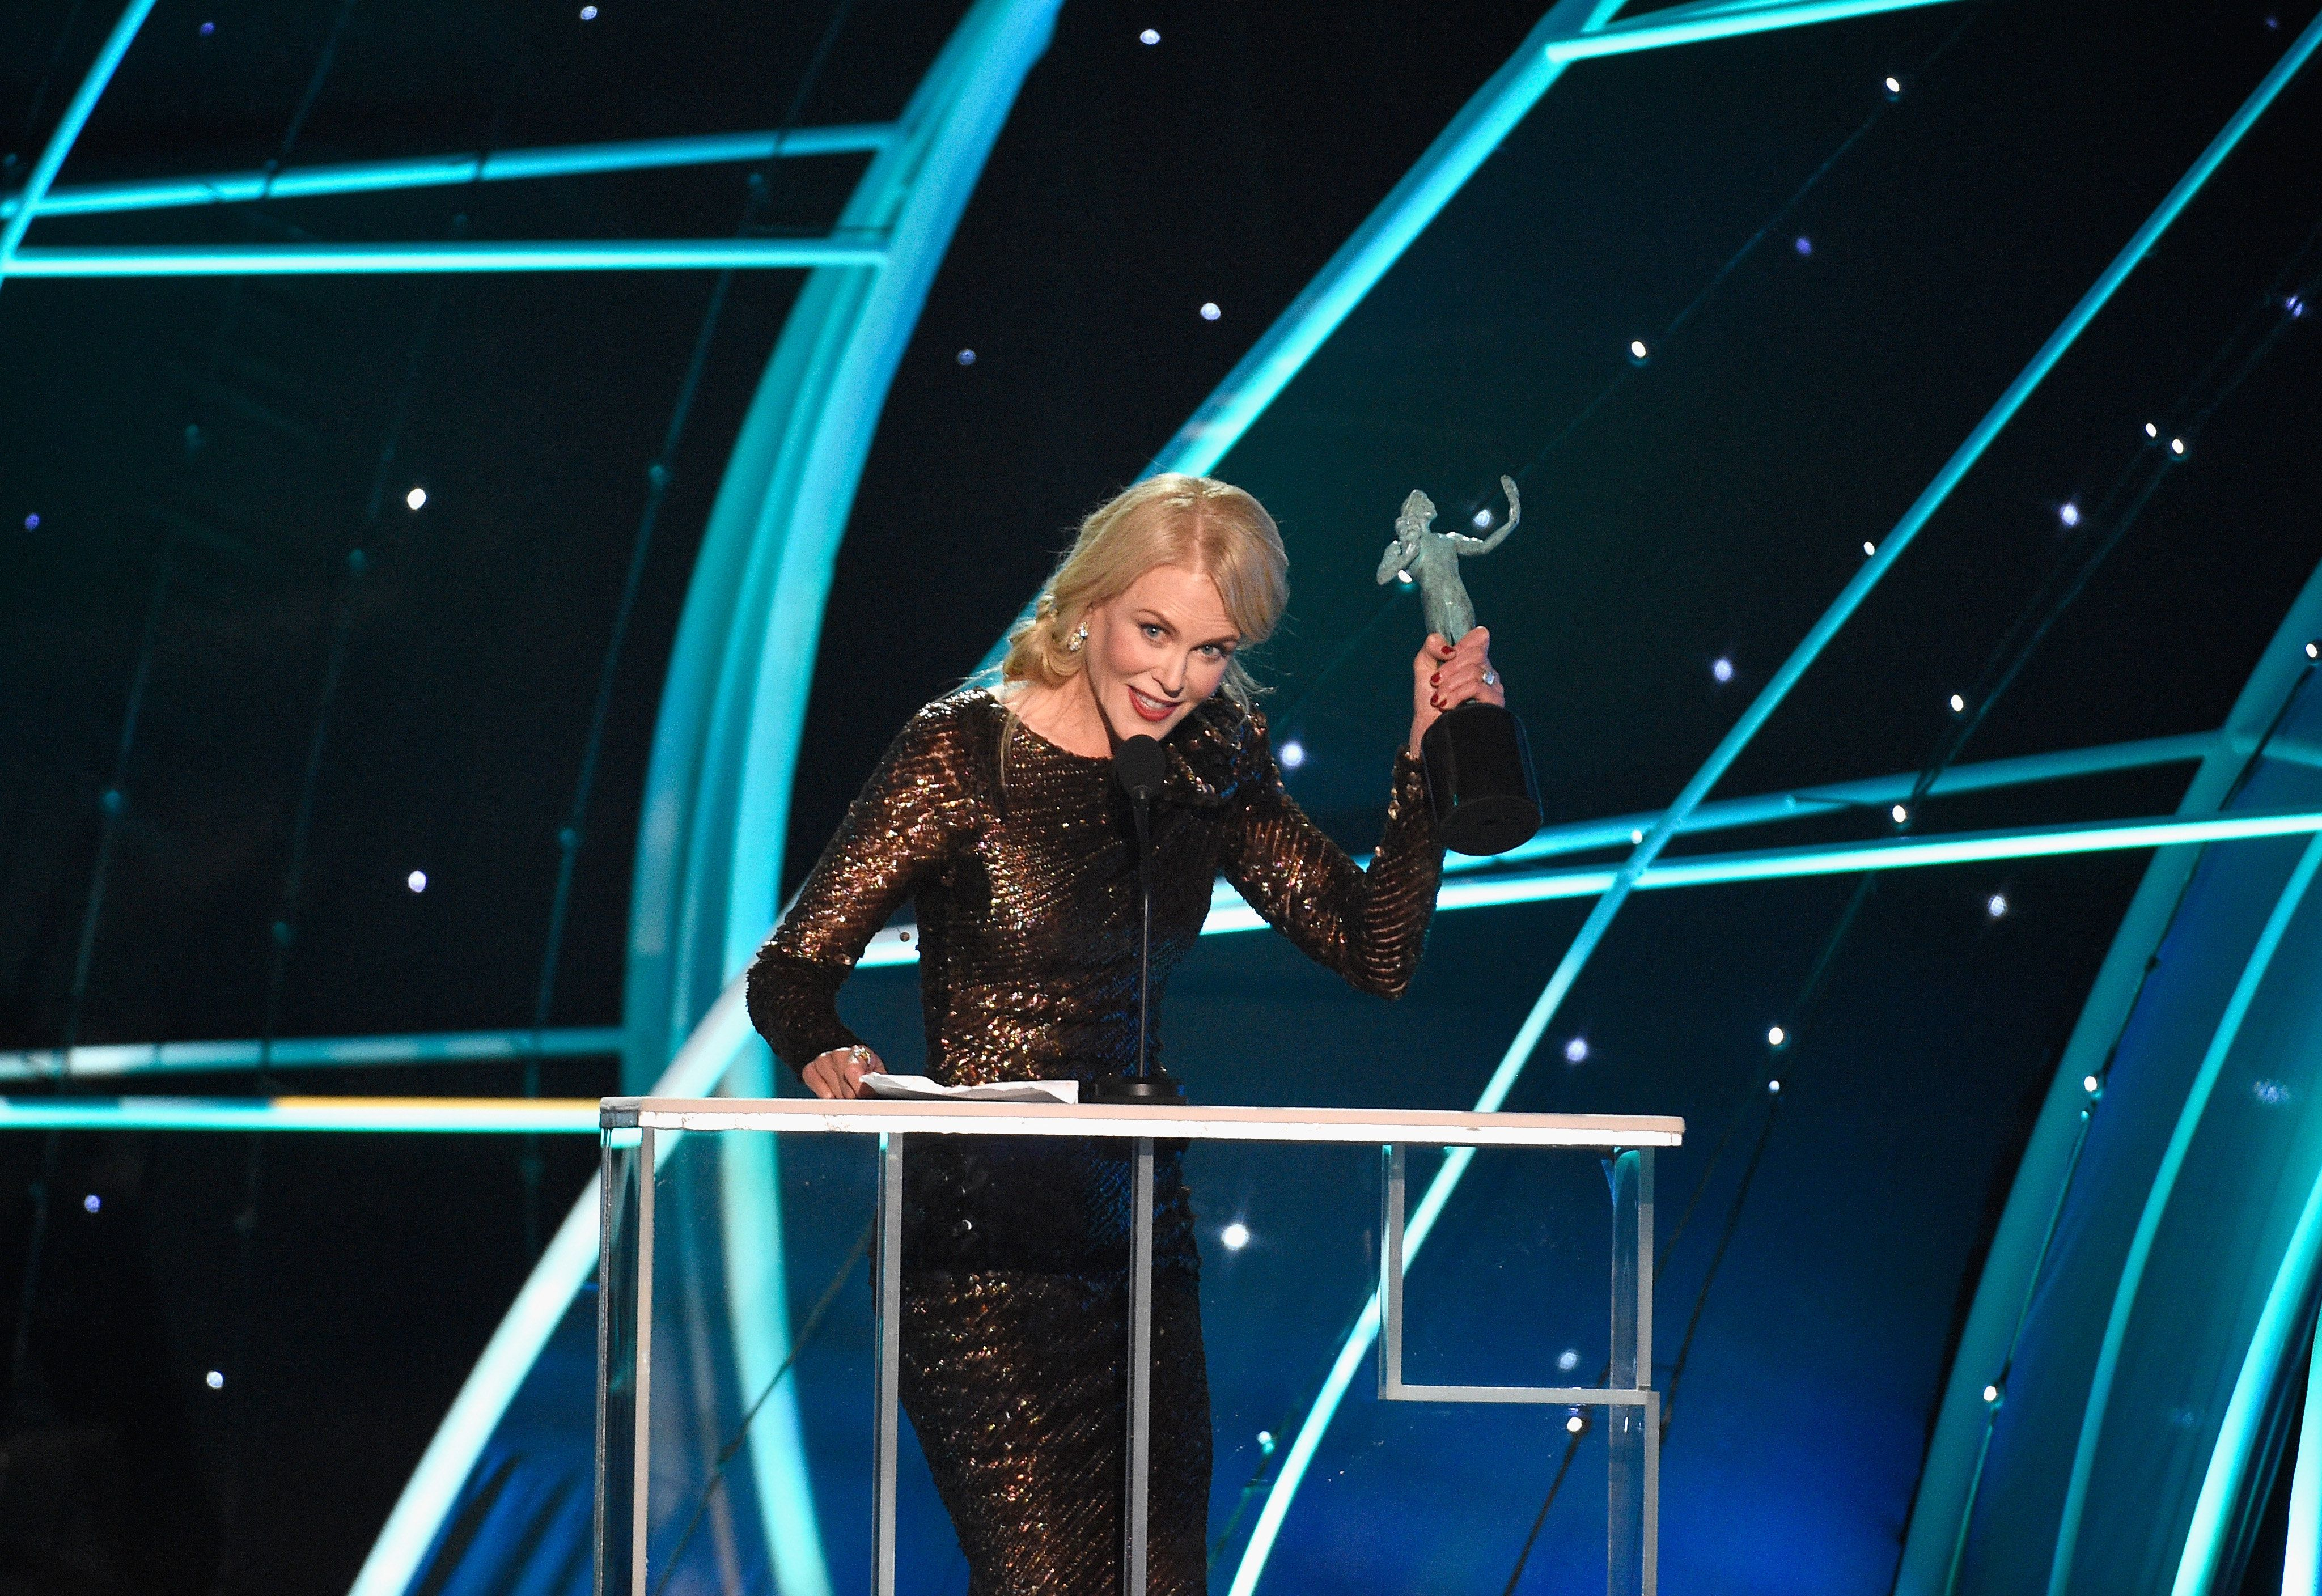 LOS ANGELES, CA - JANUARY 21:  Actor Nicole Kidman onstage during the 24th Annual Screen Actors Guild Awards at The Shrine Auditorium on January 21, 2018 in Los Angeles, California.  (Photo by Kevork Djansezian/Getty Images)